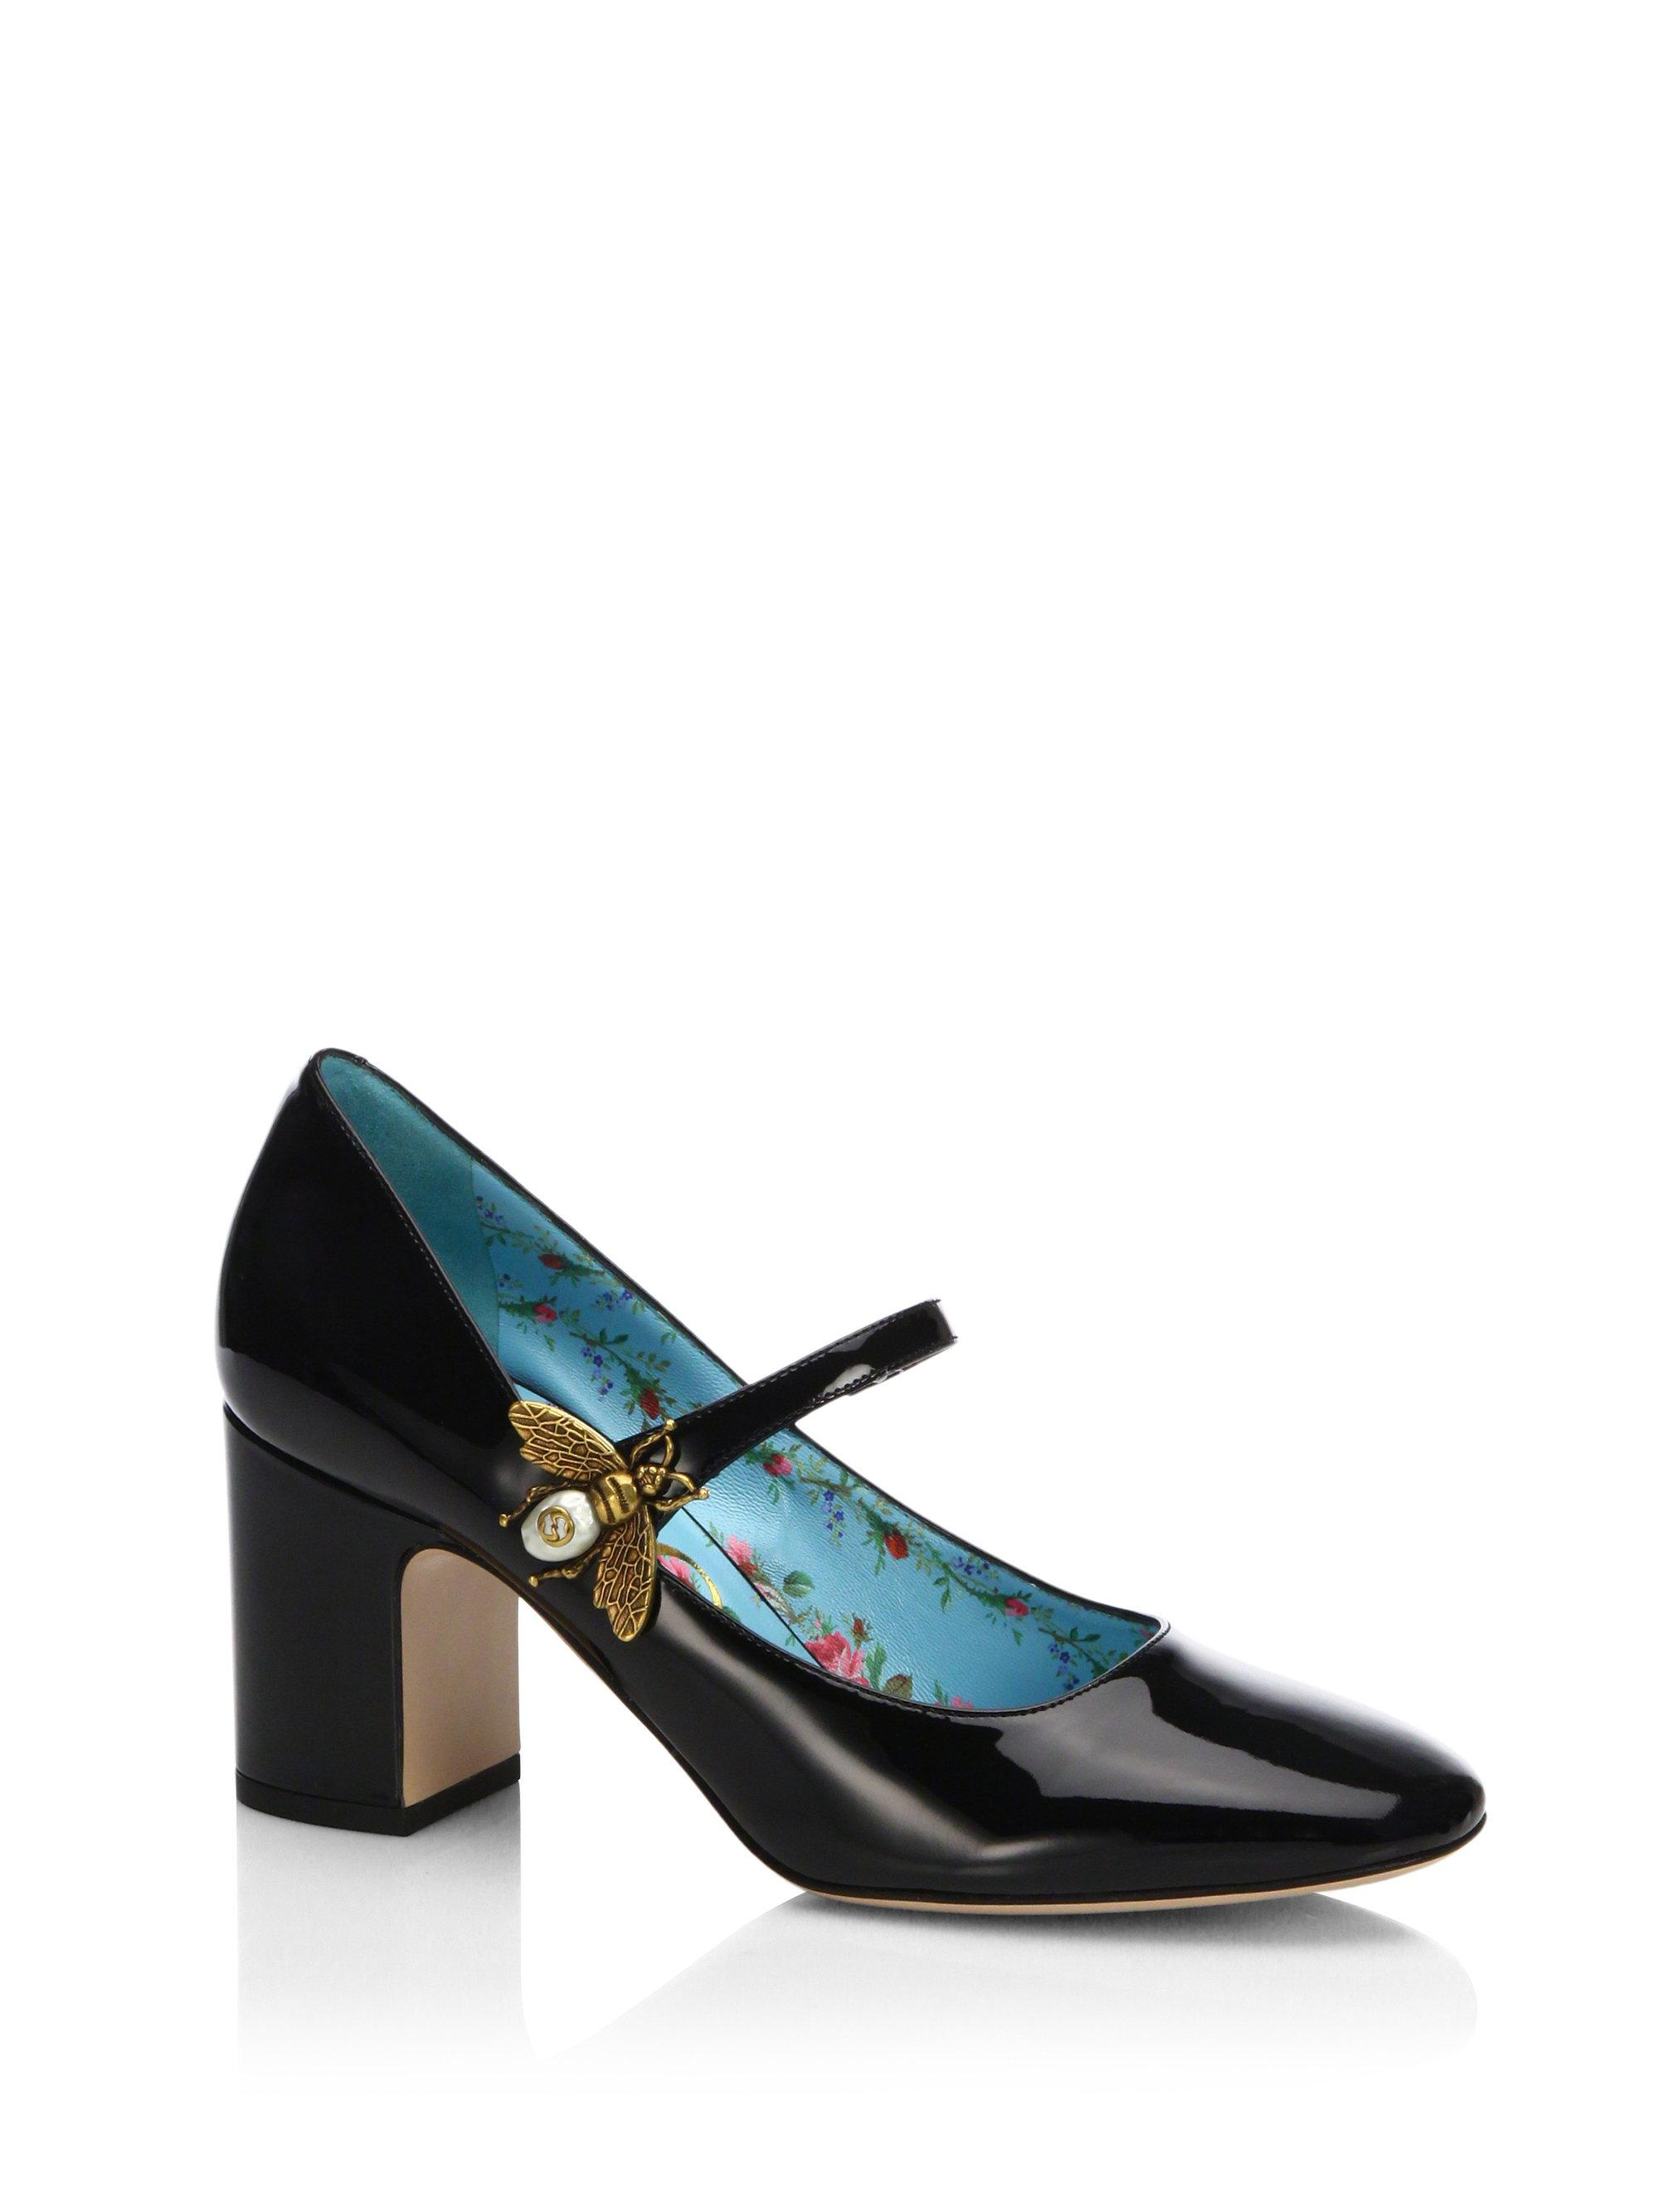 a3a08841e03 Lyst - Gucci Lois Patent Leather Mary Jane Pumps in Black